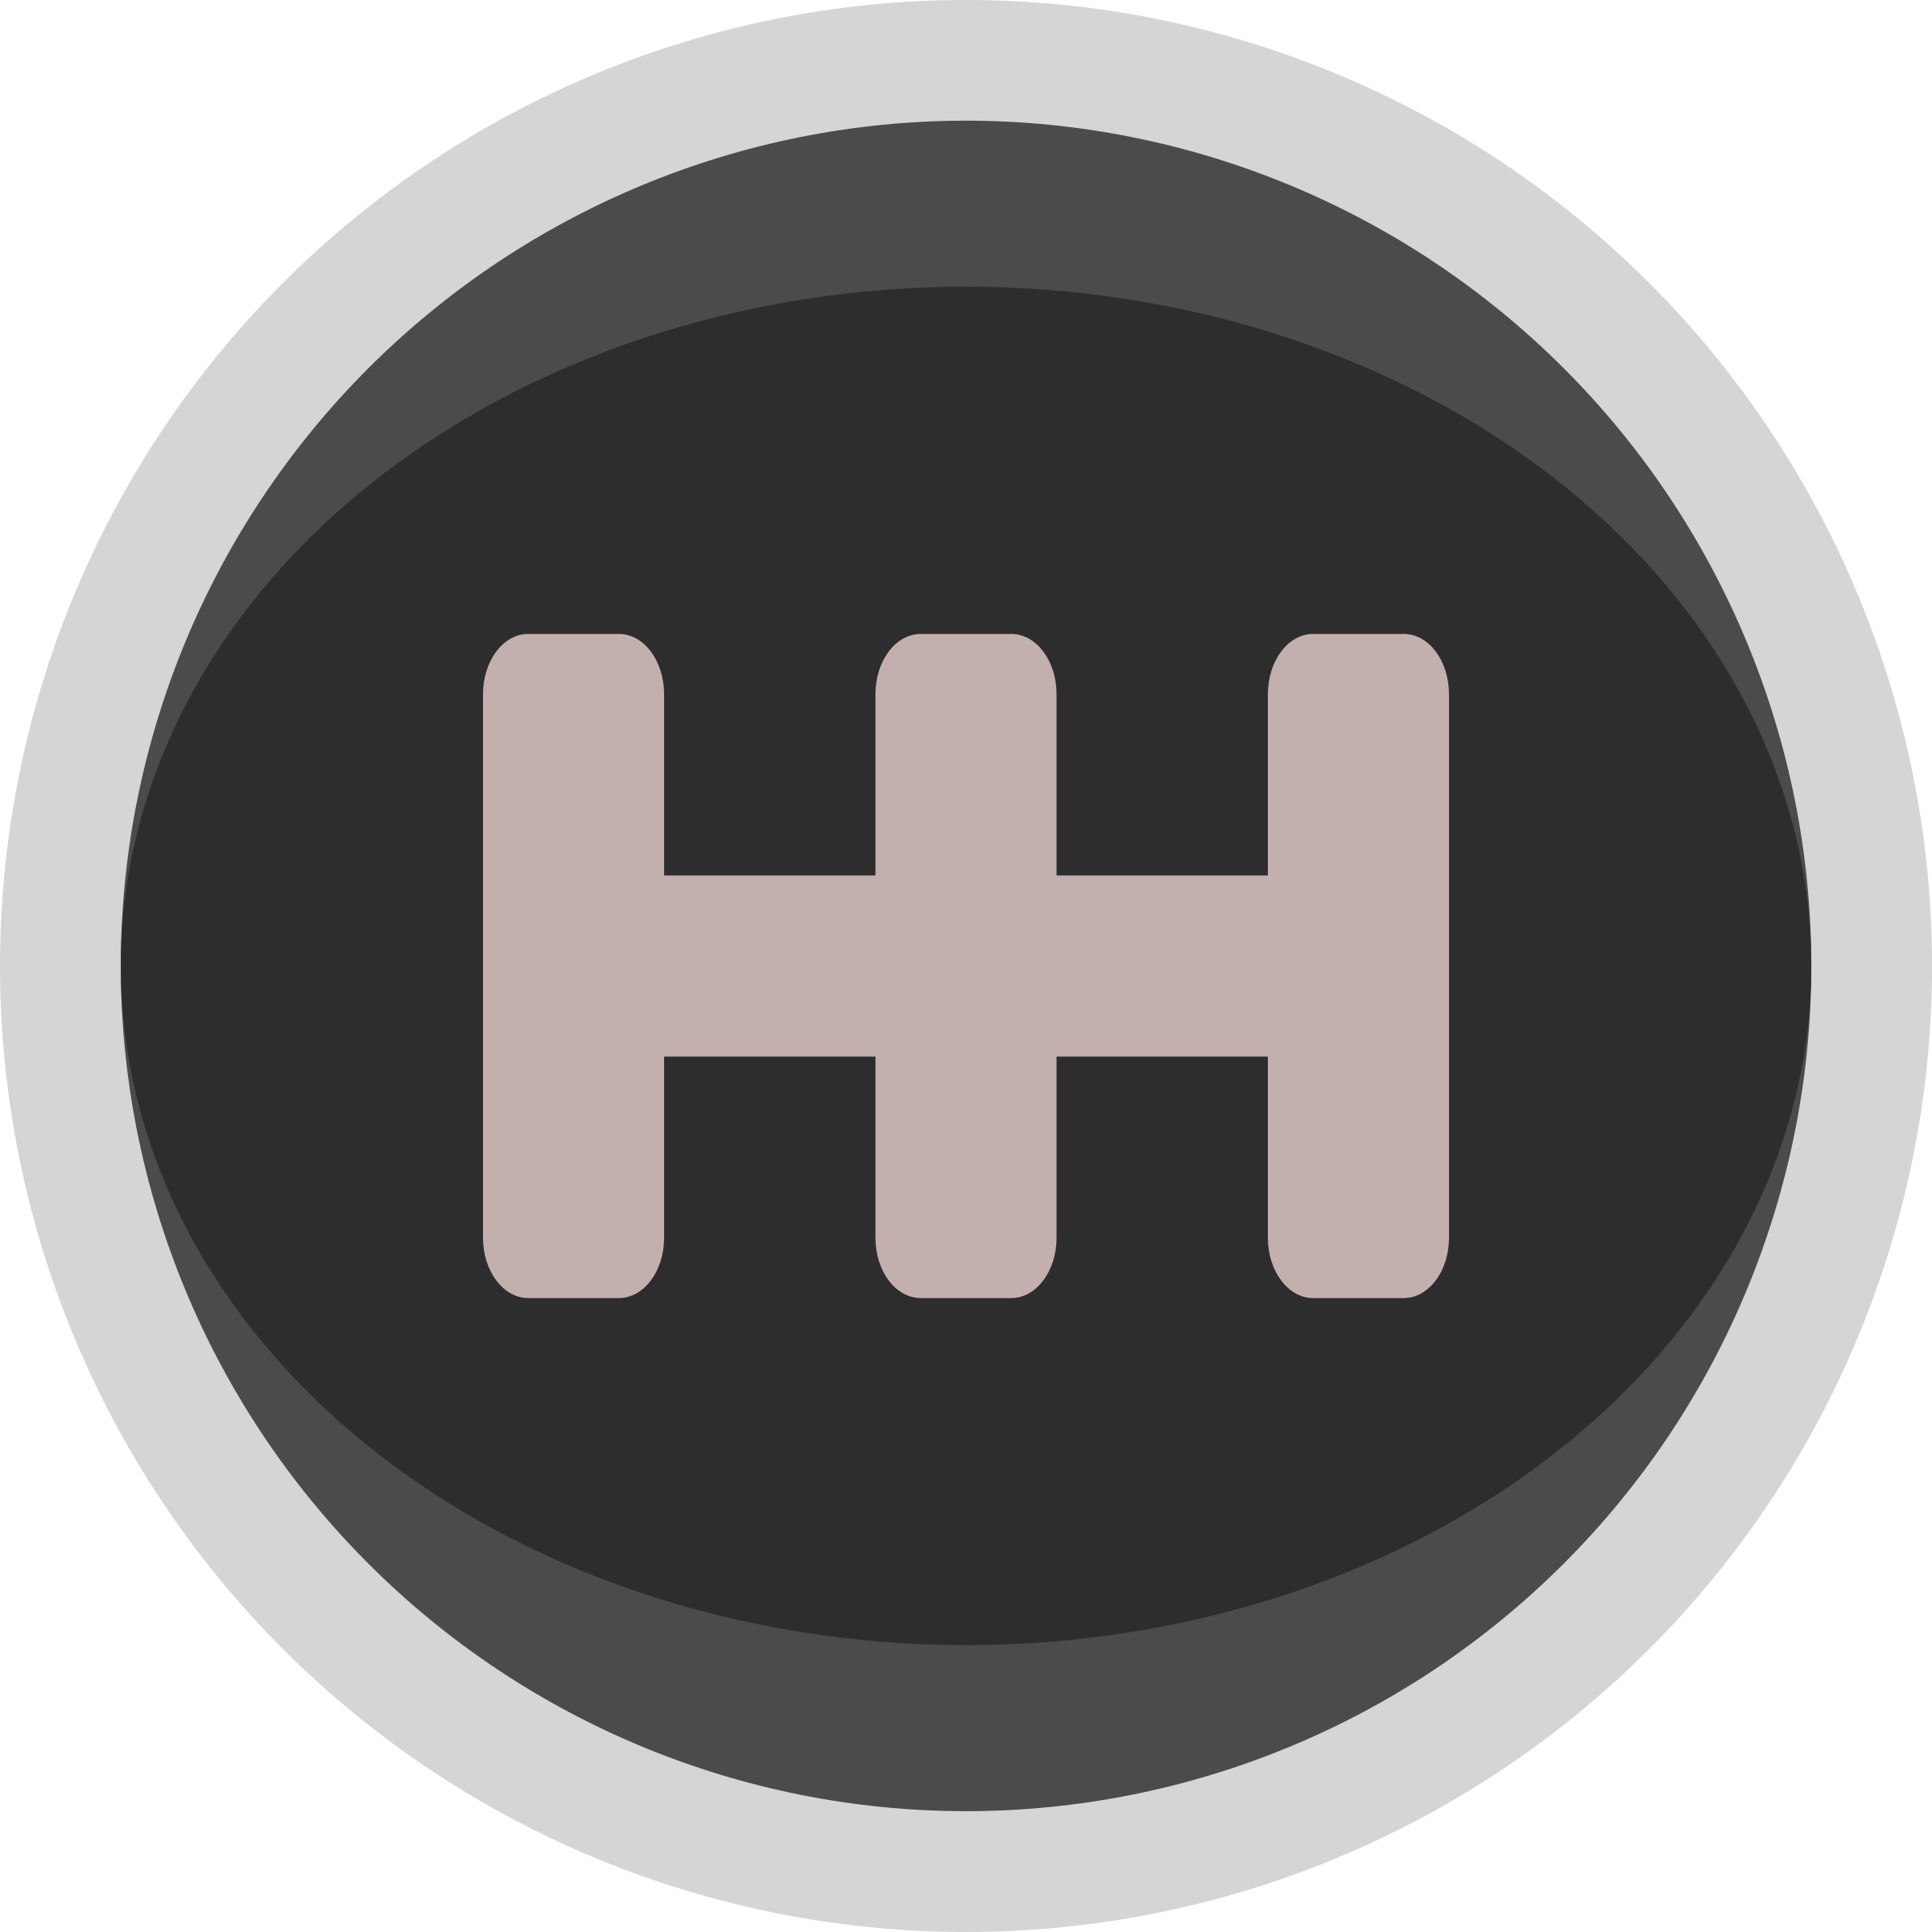 Racing Gear Shift Knob Icon Simple by qubodup